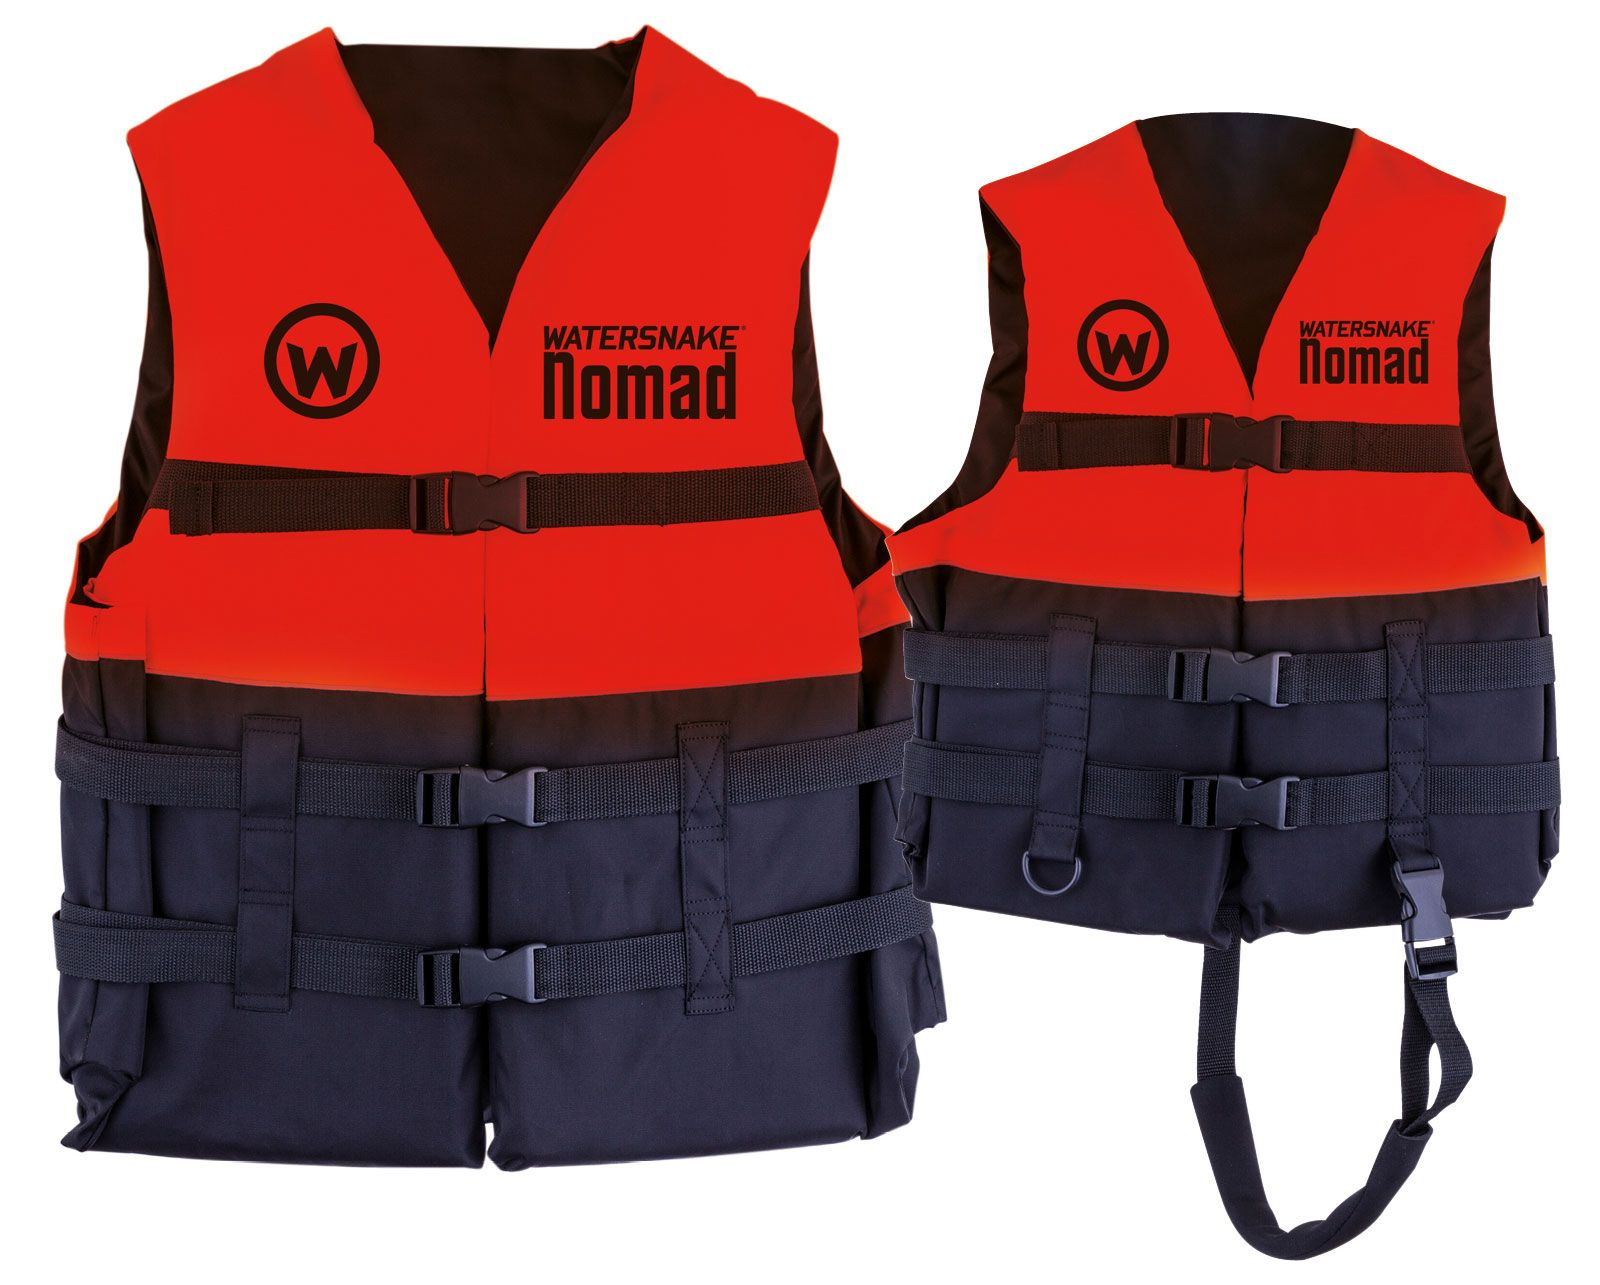 Watersnake Nomad PFD Level 50 Red Life Jacket Adult